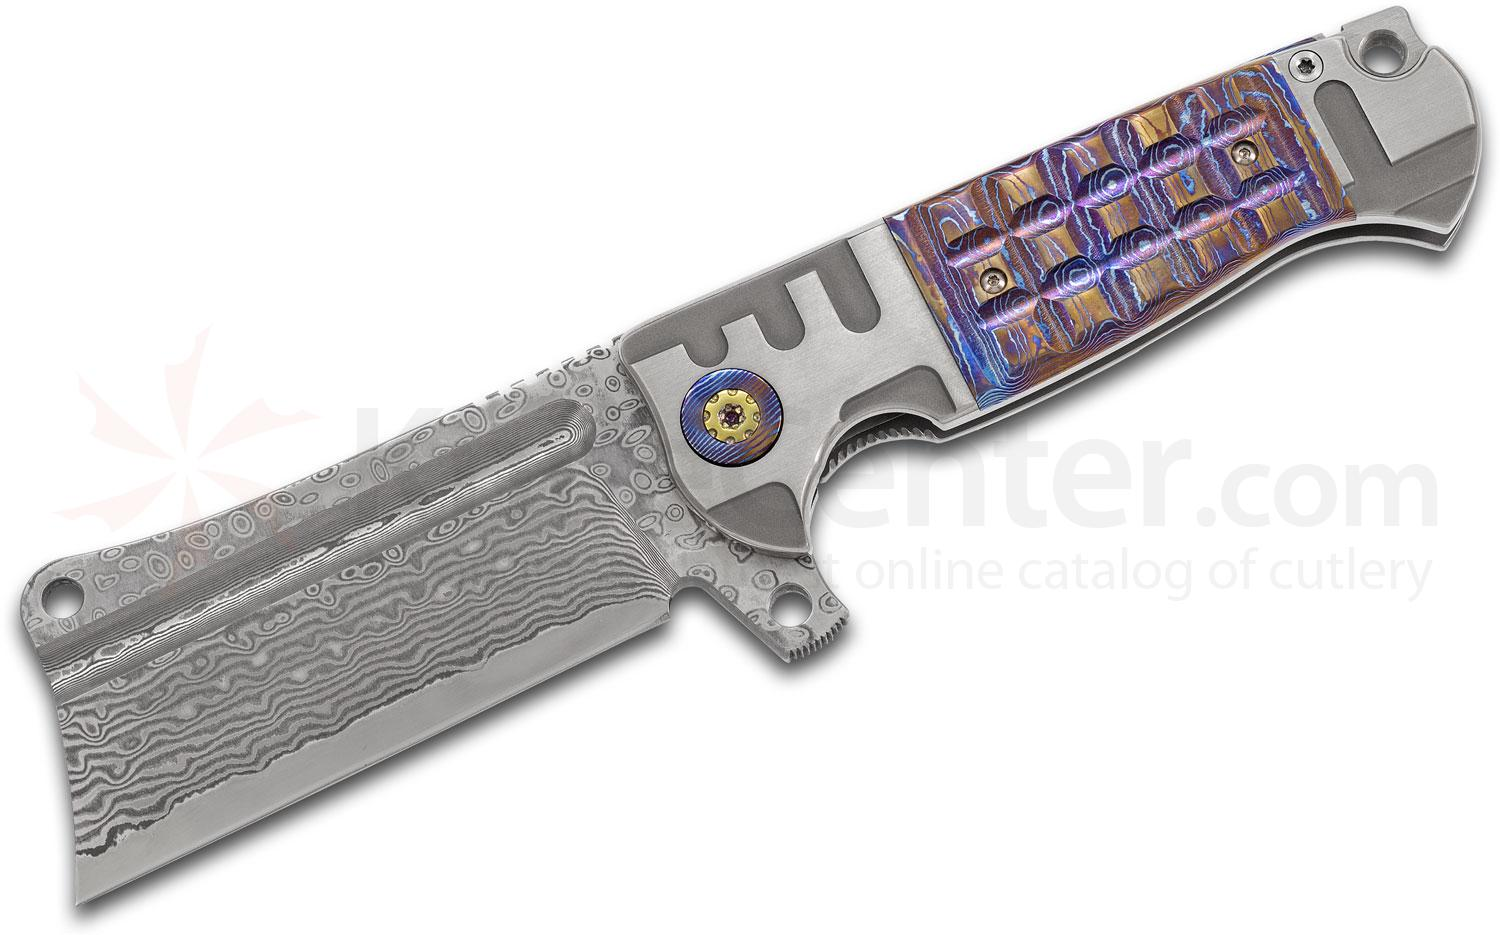 Andre De Villiers Knives Battle Cleaver Flipper Knife 4.125 inch VG-10 Damascus Blade, Milled Titanium Handles with Mokuti Inlays and Pivot Collars